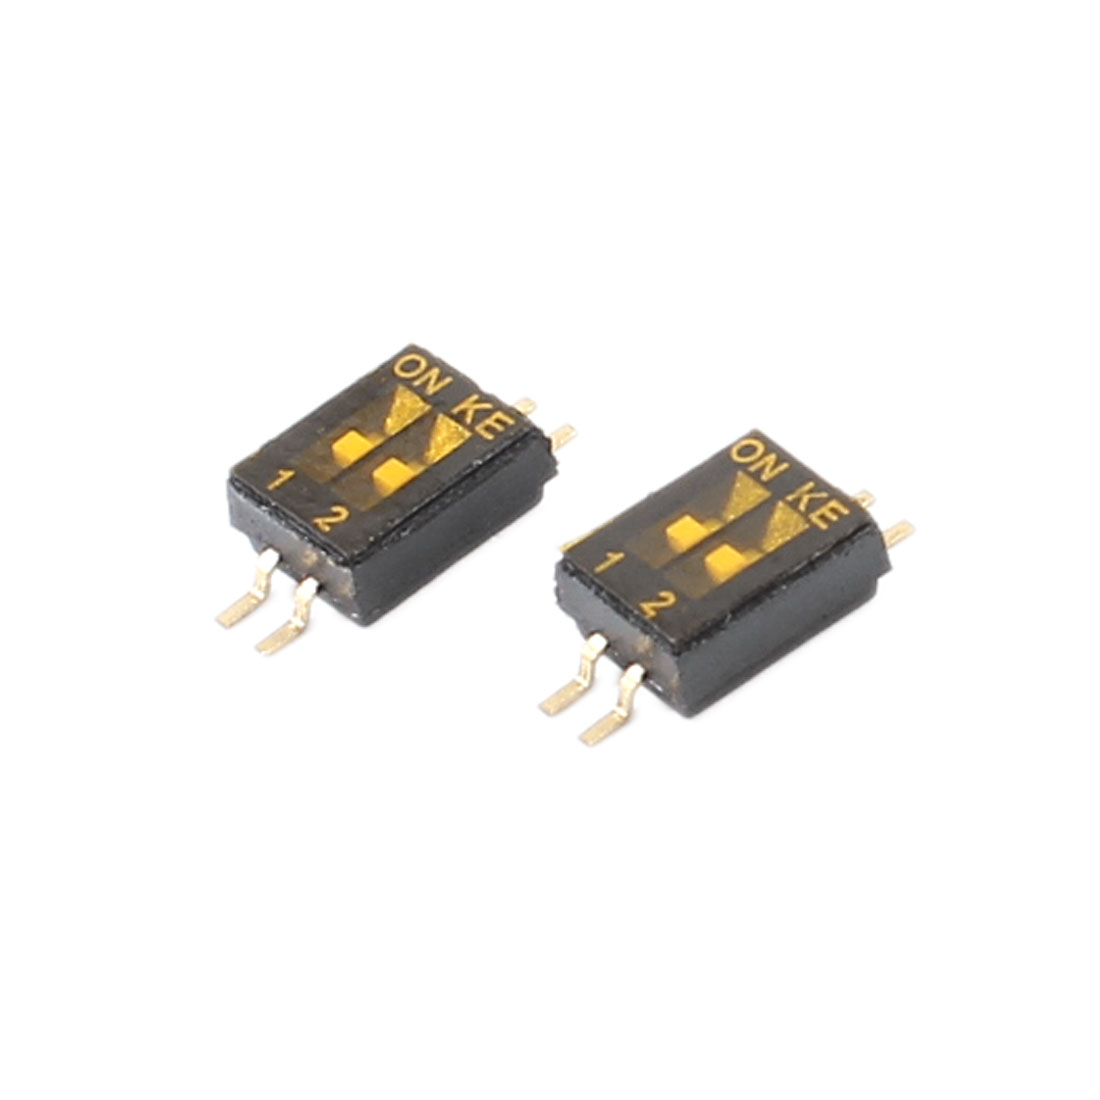 1.27mm Spacing 4Pin 2 Position Slide Type SMT SMD DIP Switch 2 Pieces